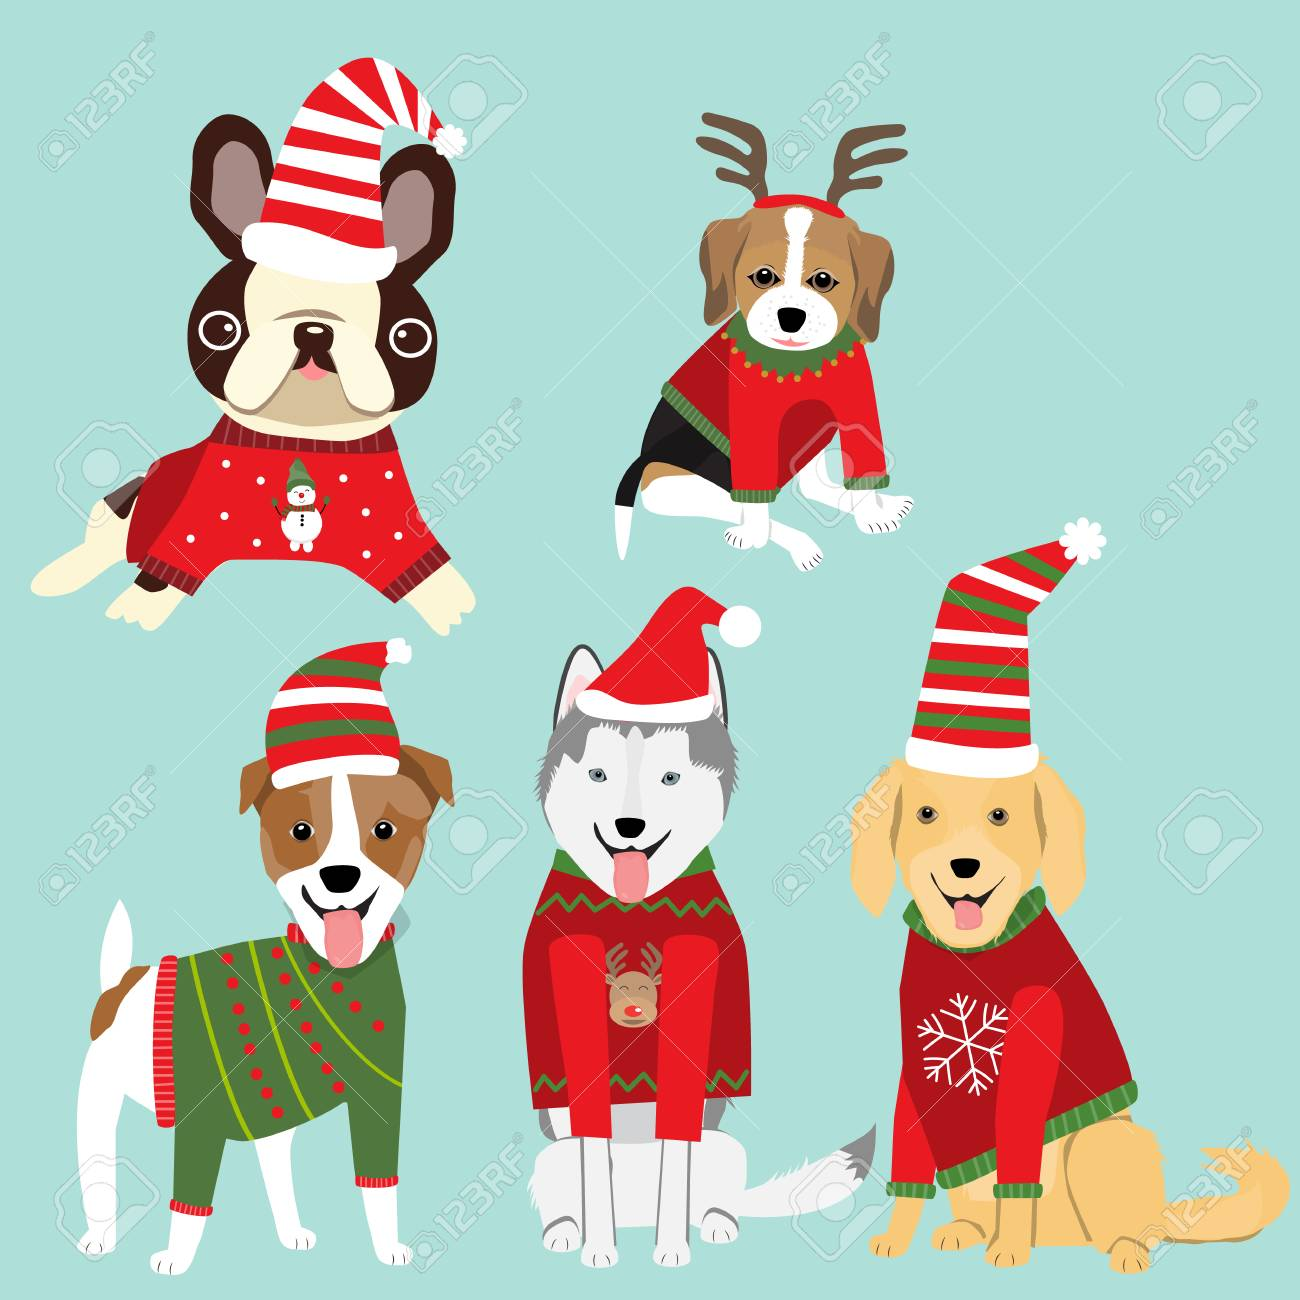 Dogs in Christmas sweater celebret for winter greeting  season.illustration.EPS10..